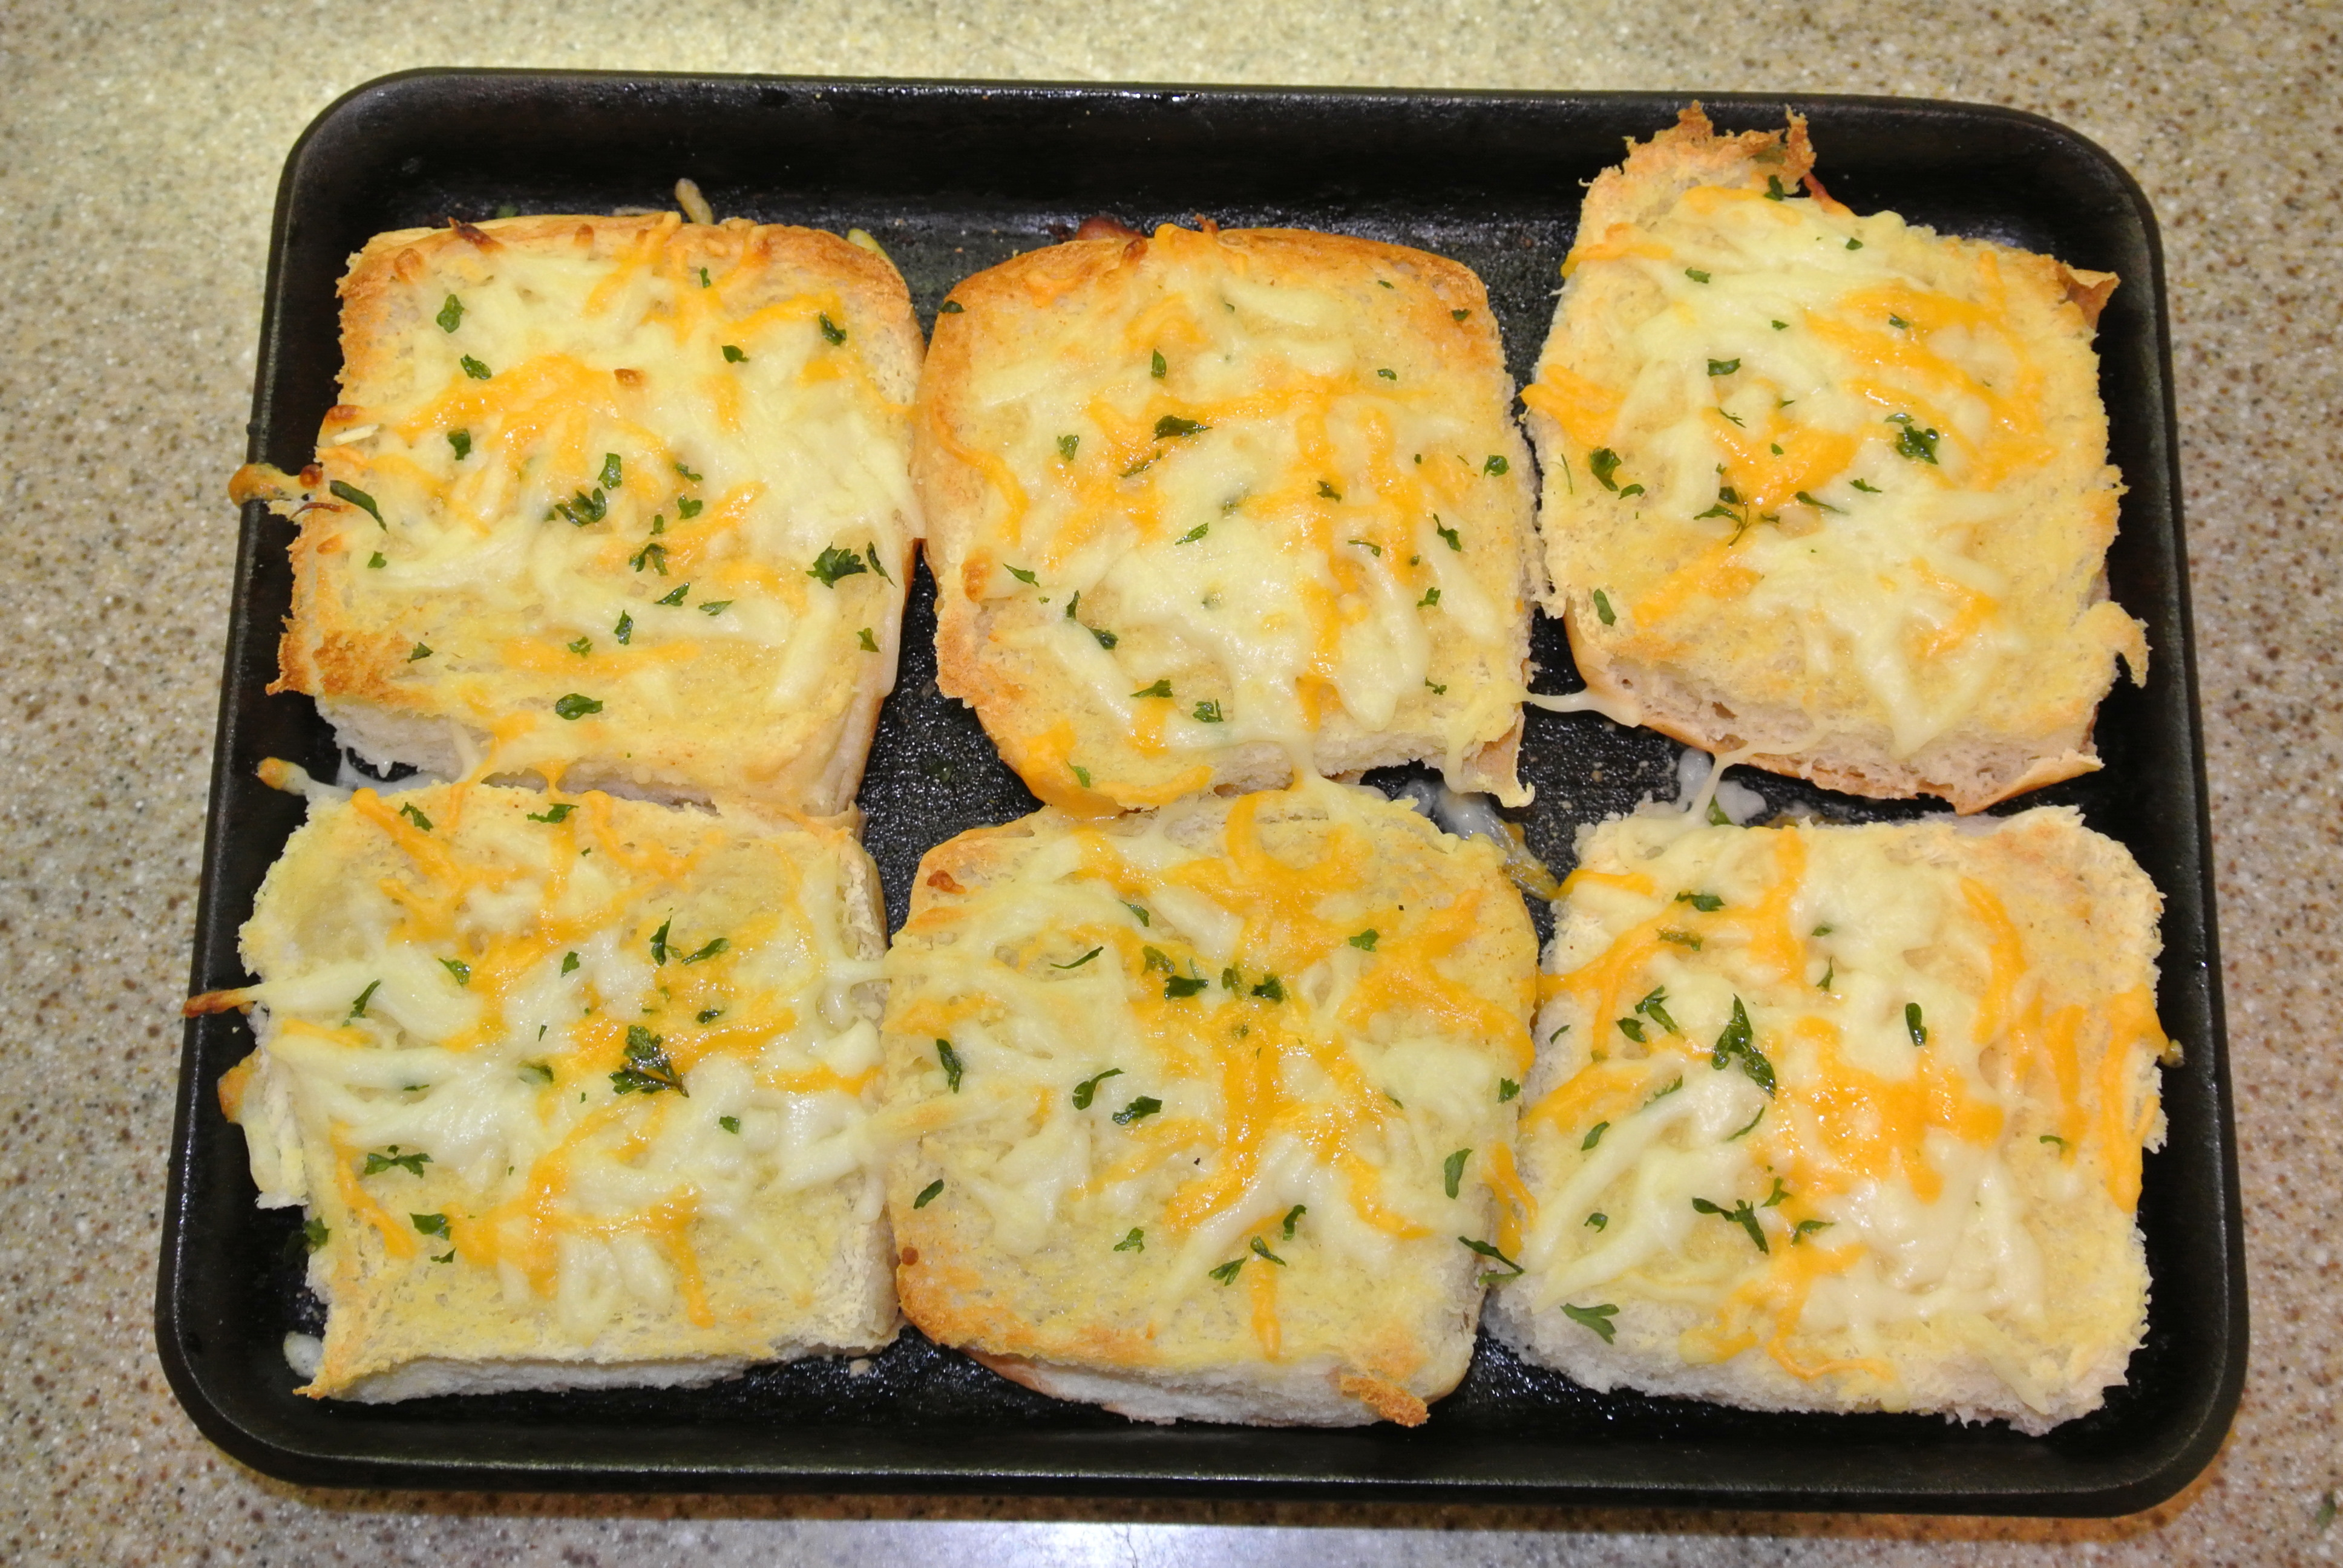 Quick and easy garlic bread made from leftover buns.